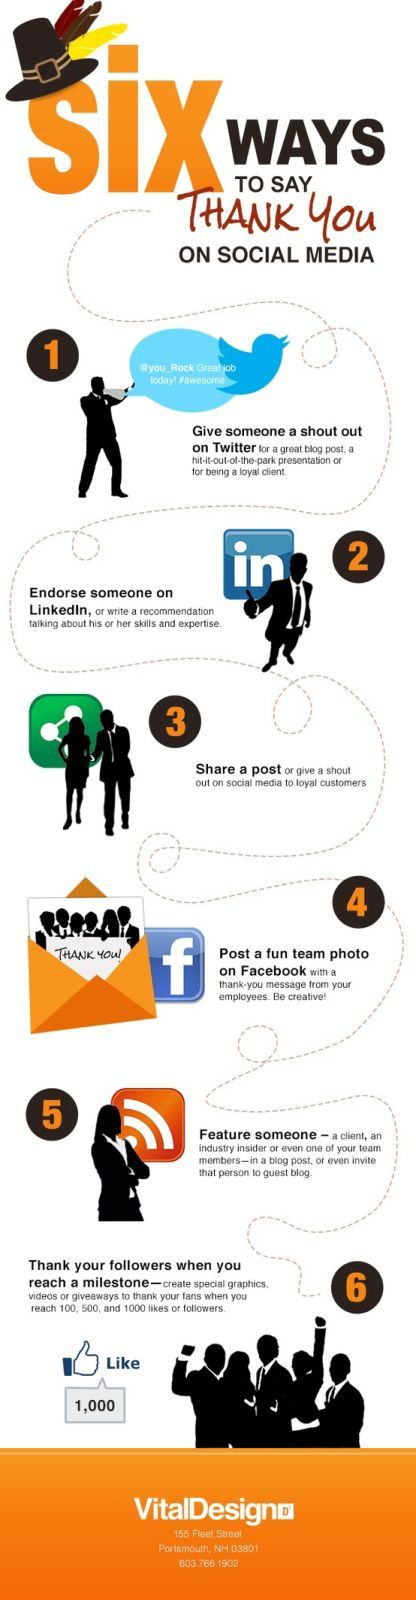 Ways to say thank you on social media. #infographic (you're welcome)